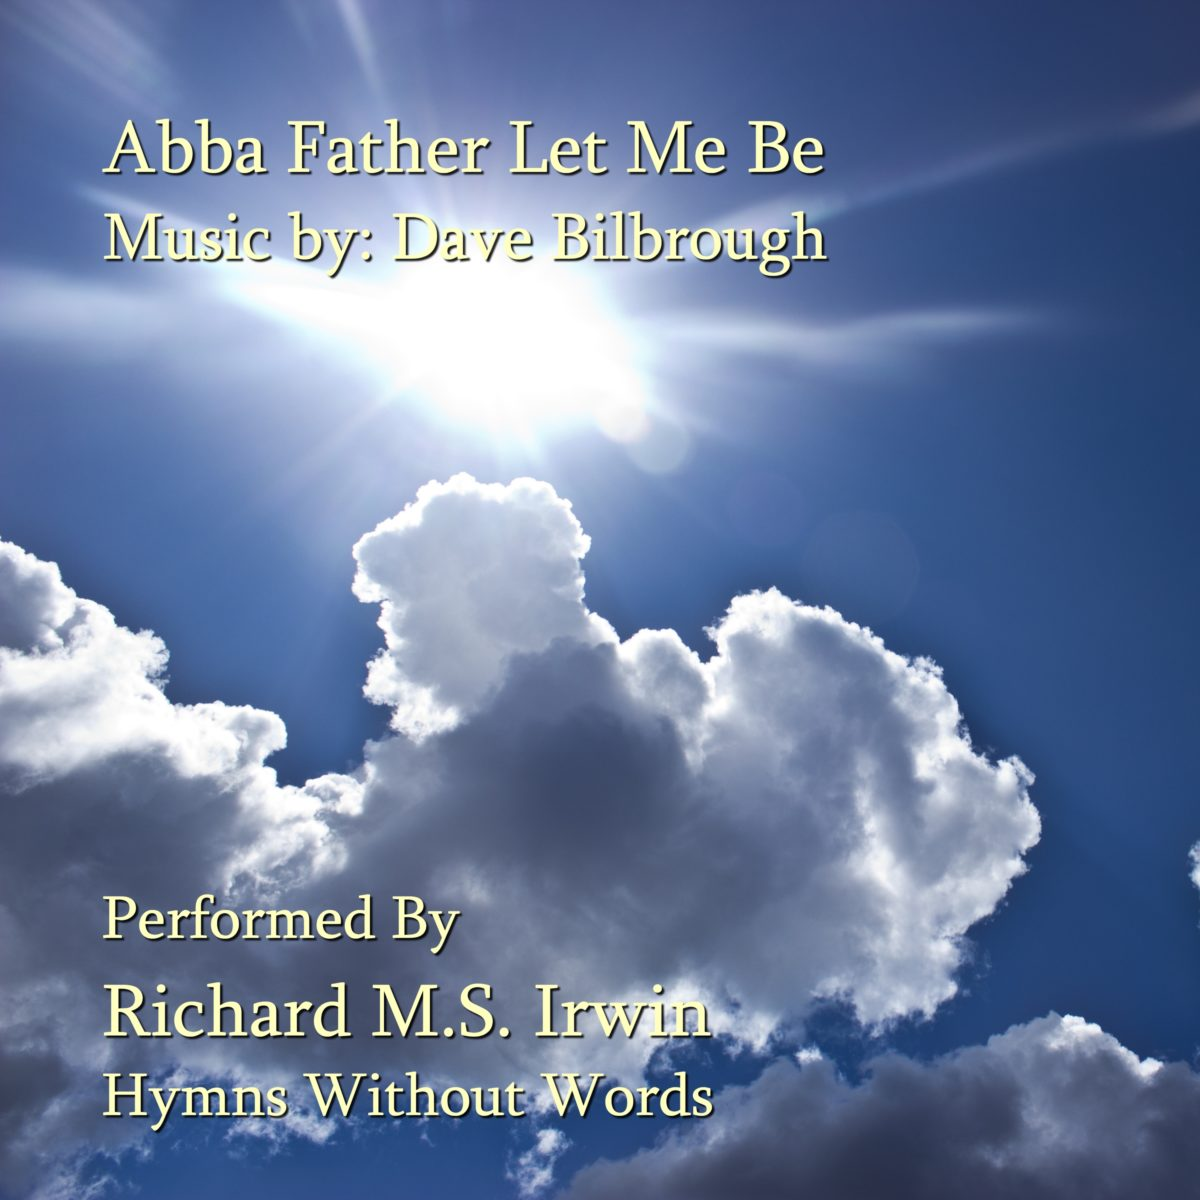 Abba Father Let Me Be (Flute and Theodor, 2 Verses)